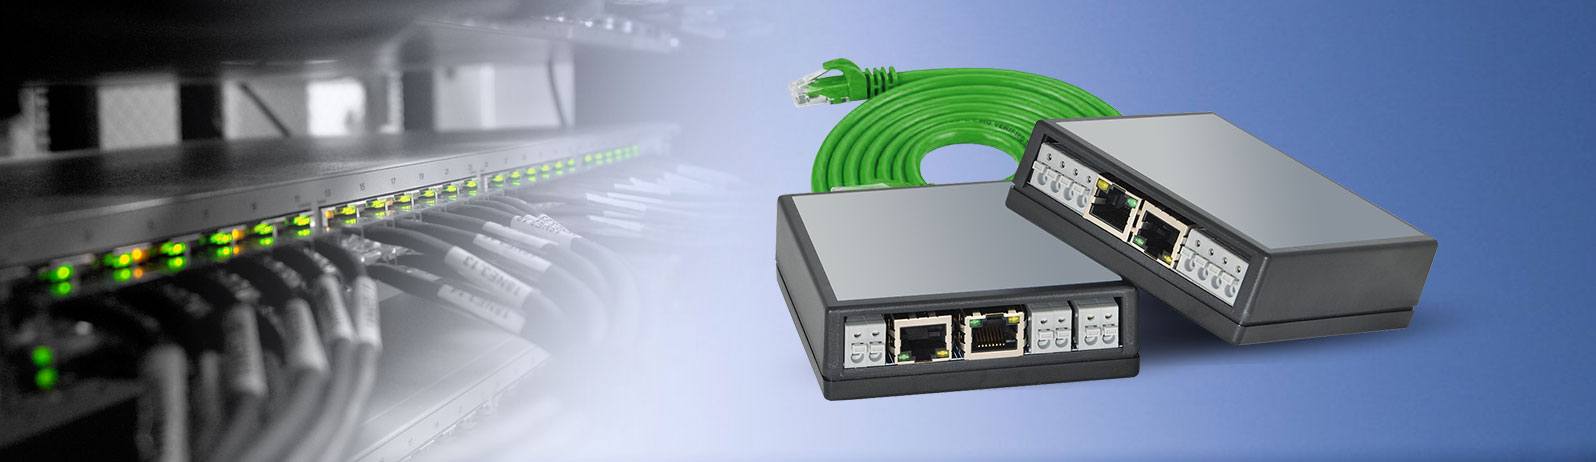 Networking & Wiring